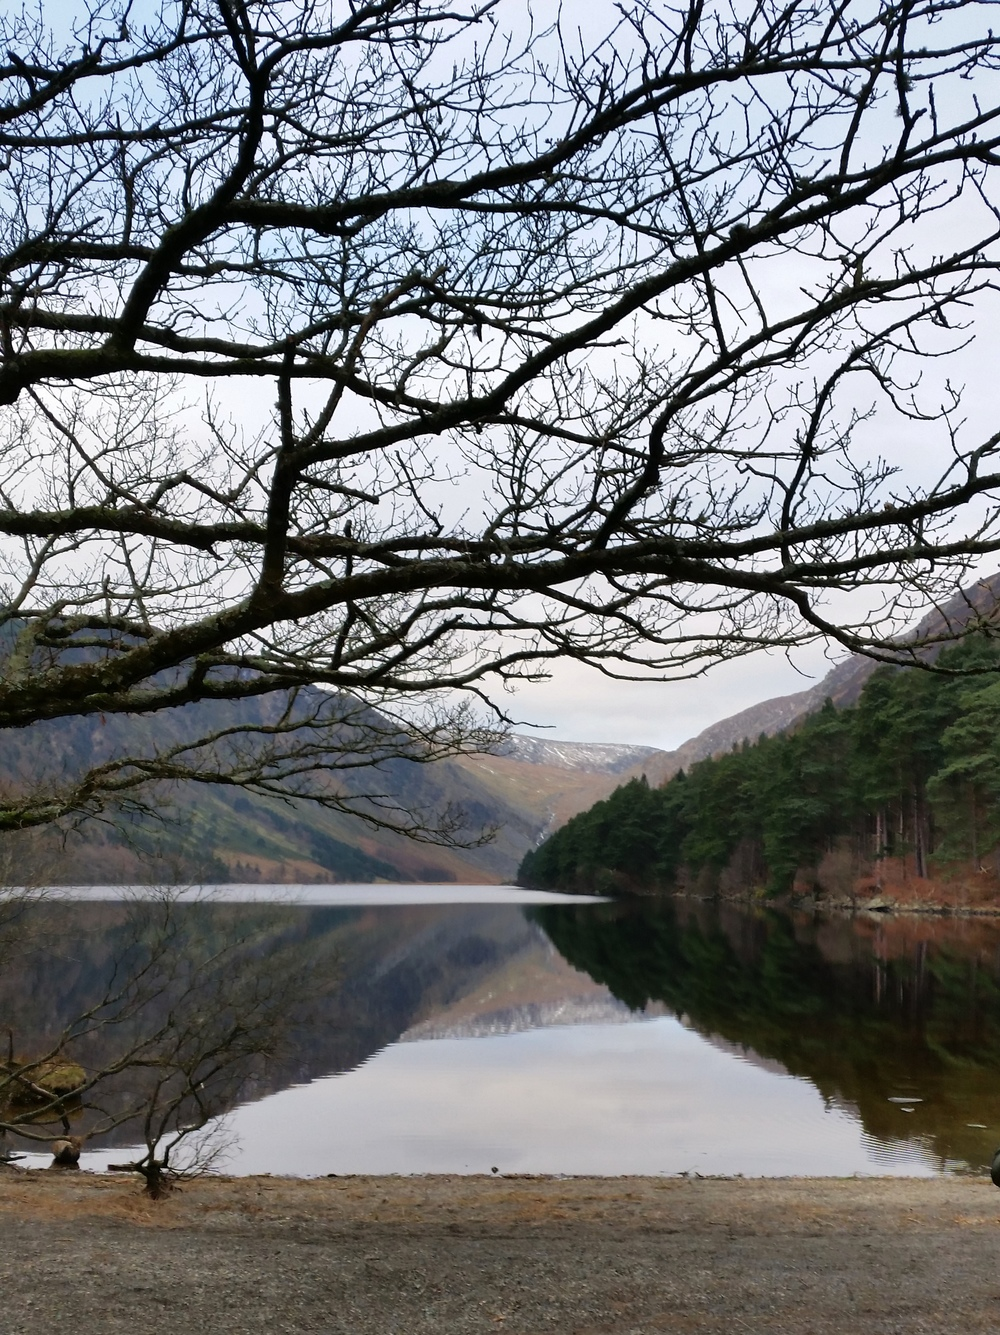 Upper lake at glendalough - county wicklow by joanna dacosta